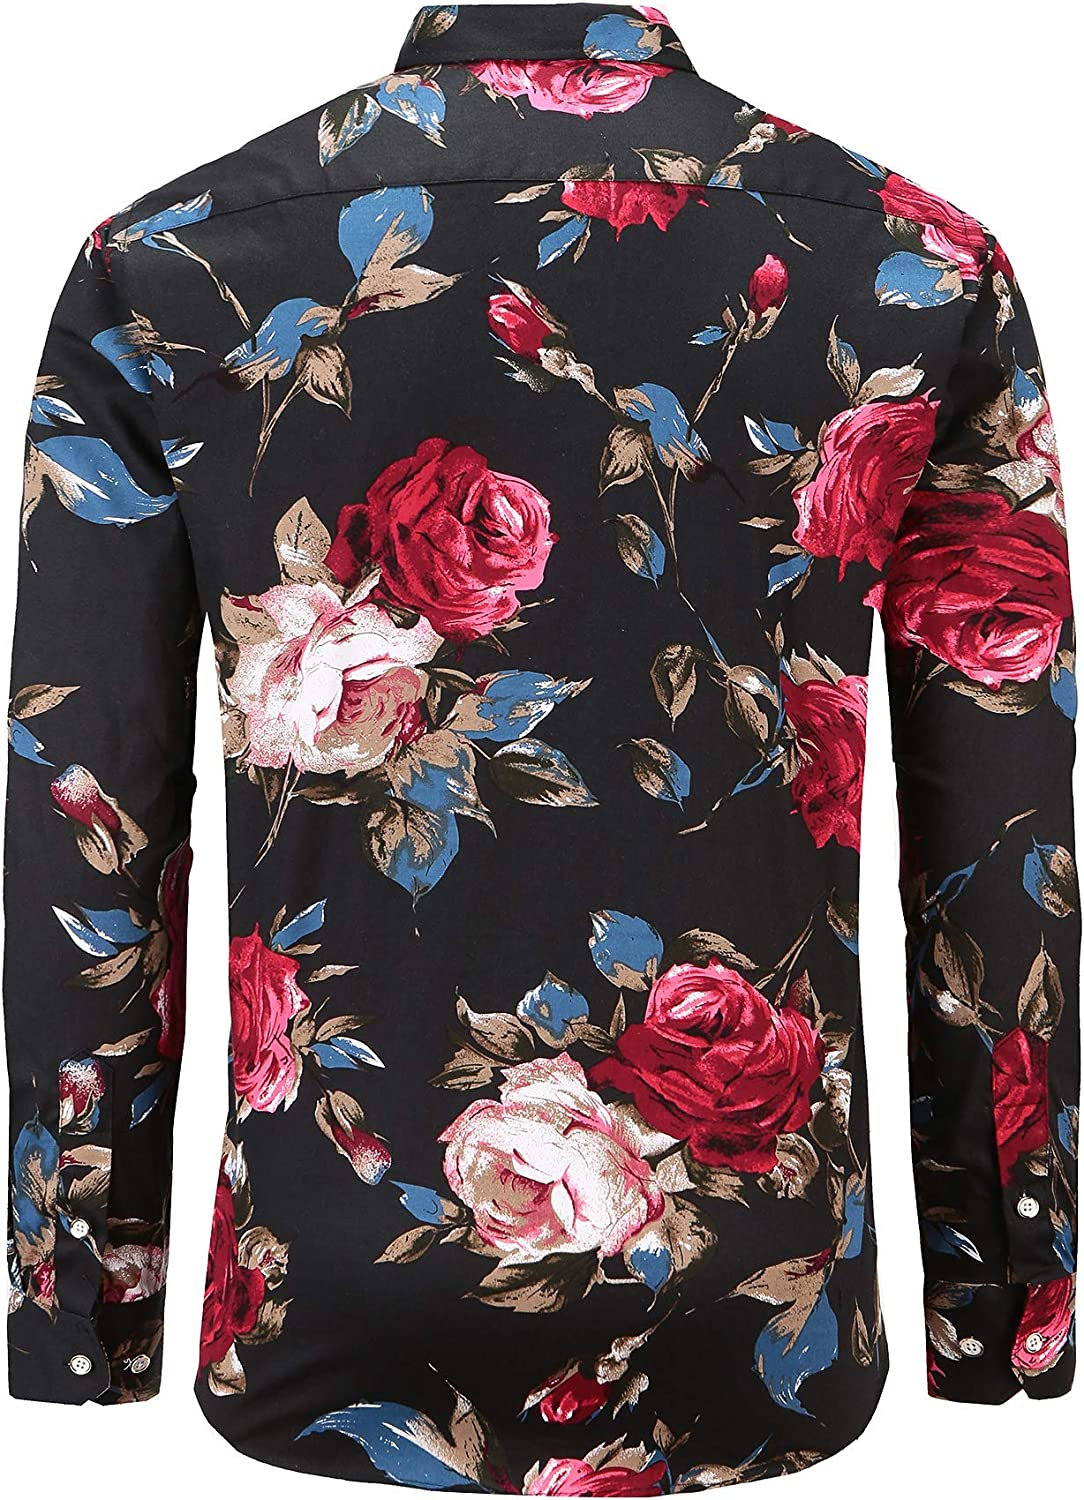 Dioufond Mens Floral Dress Shirt Button Down Long Sleeve Flower Shirts